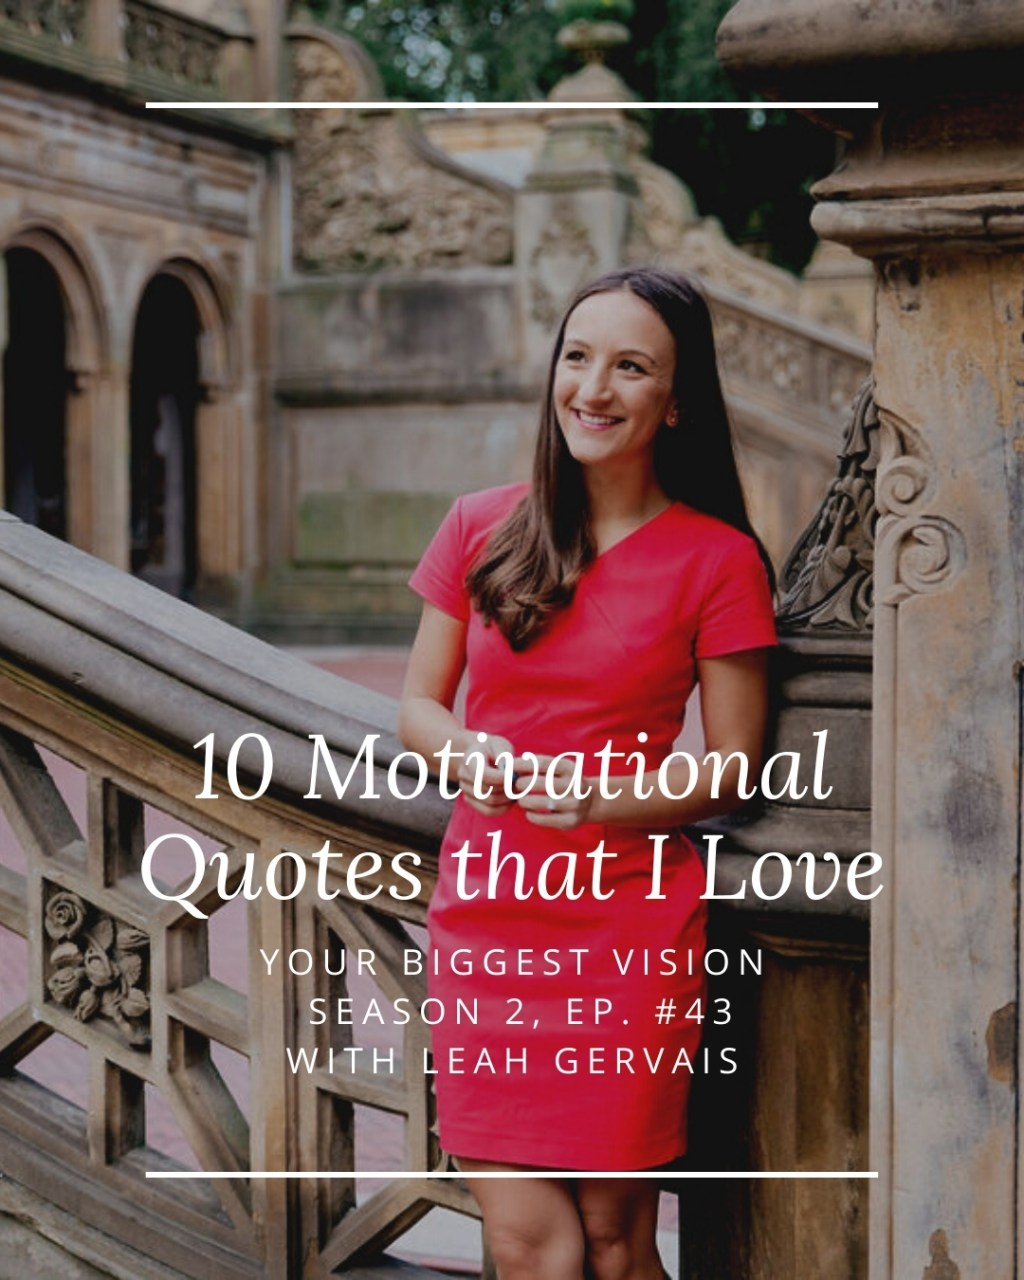 Today I am sharing with you 10 motivational quotes that have served me at different times throughout my entrepreneurial journey.